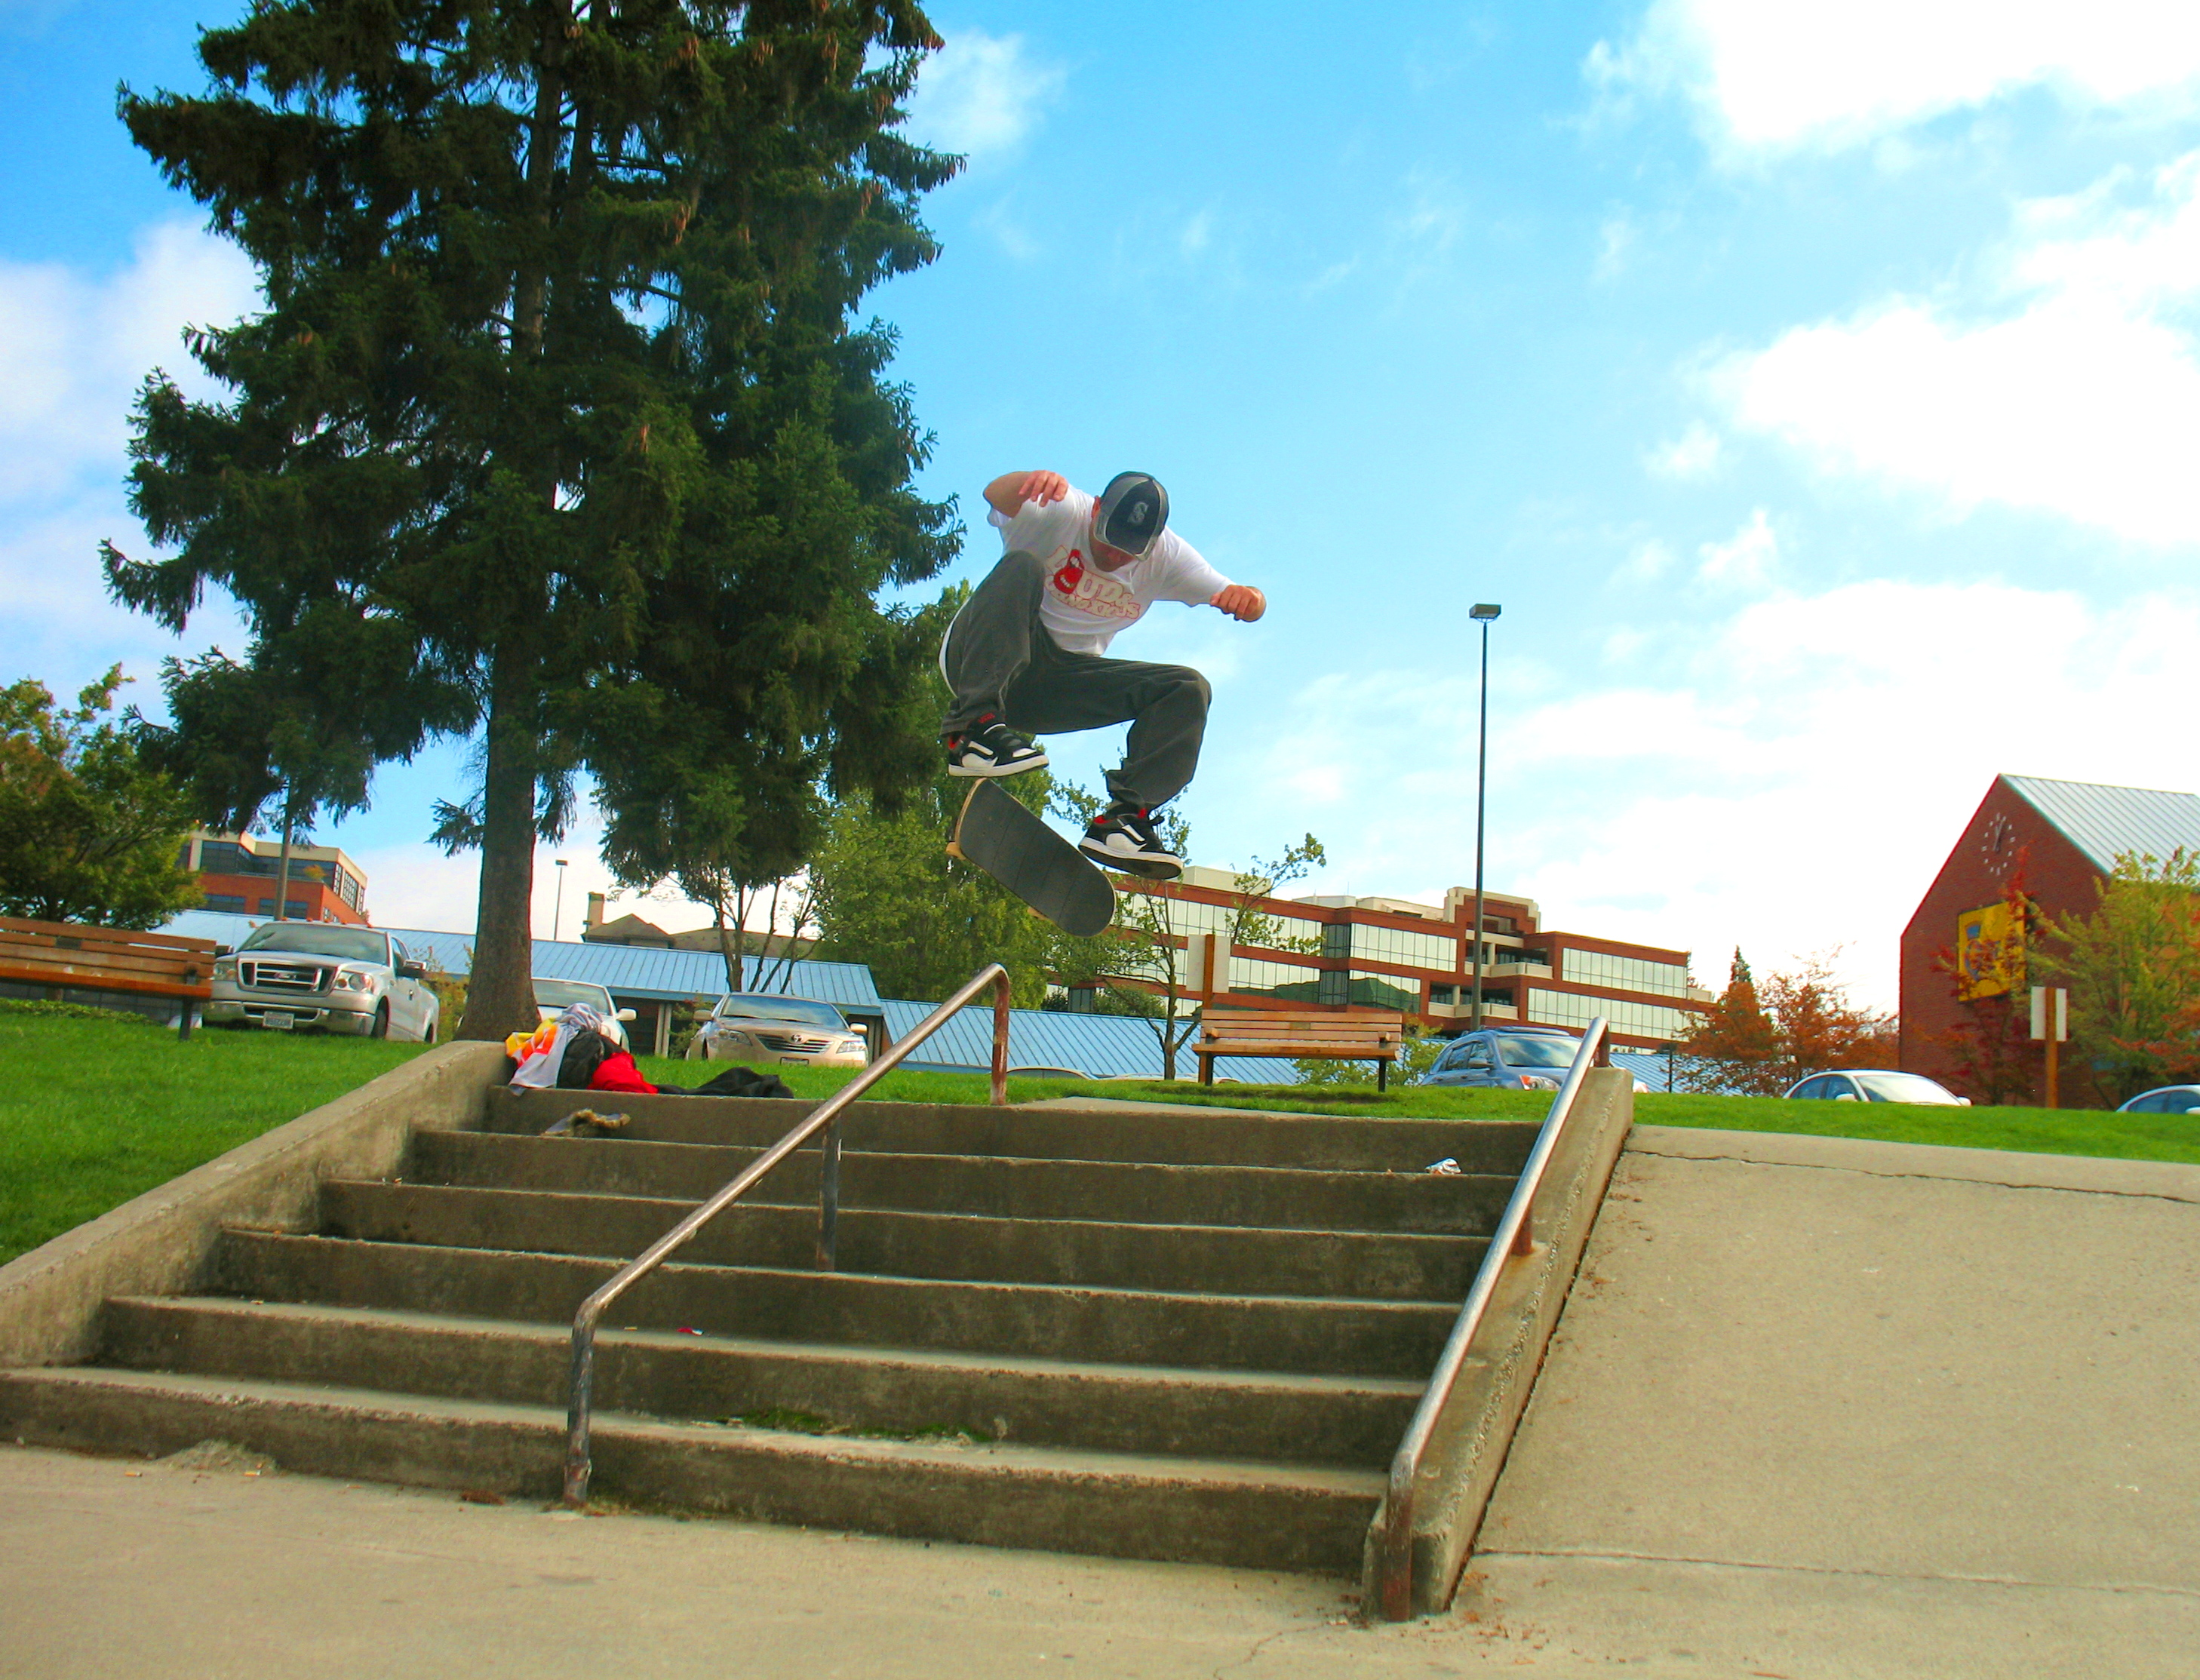 kirkland park, Kickflip, photo: unknown credits coming